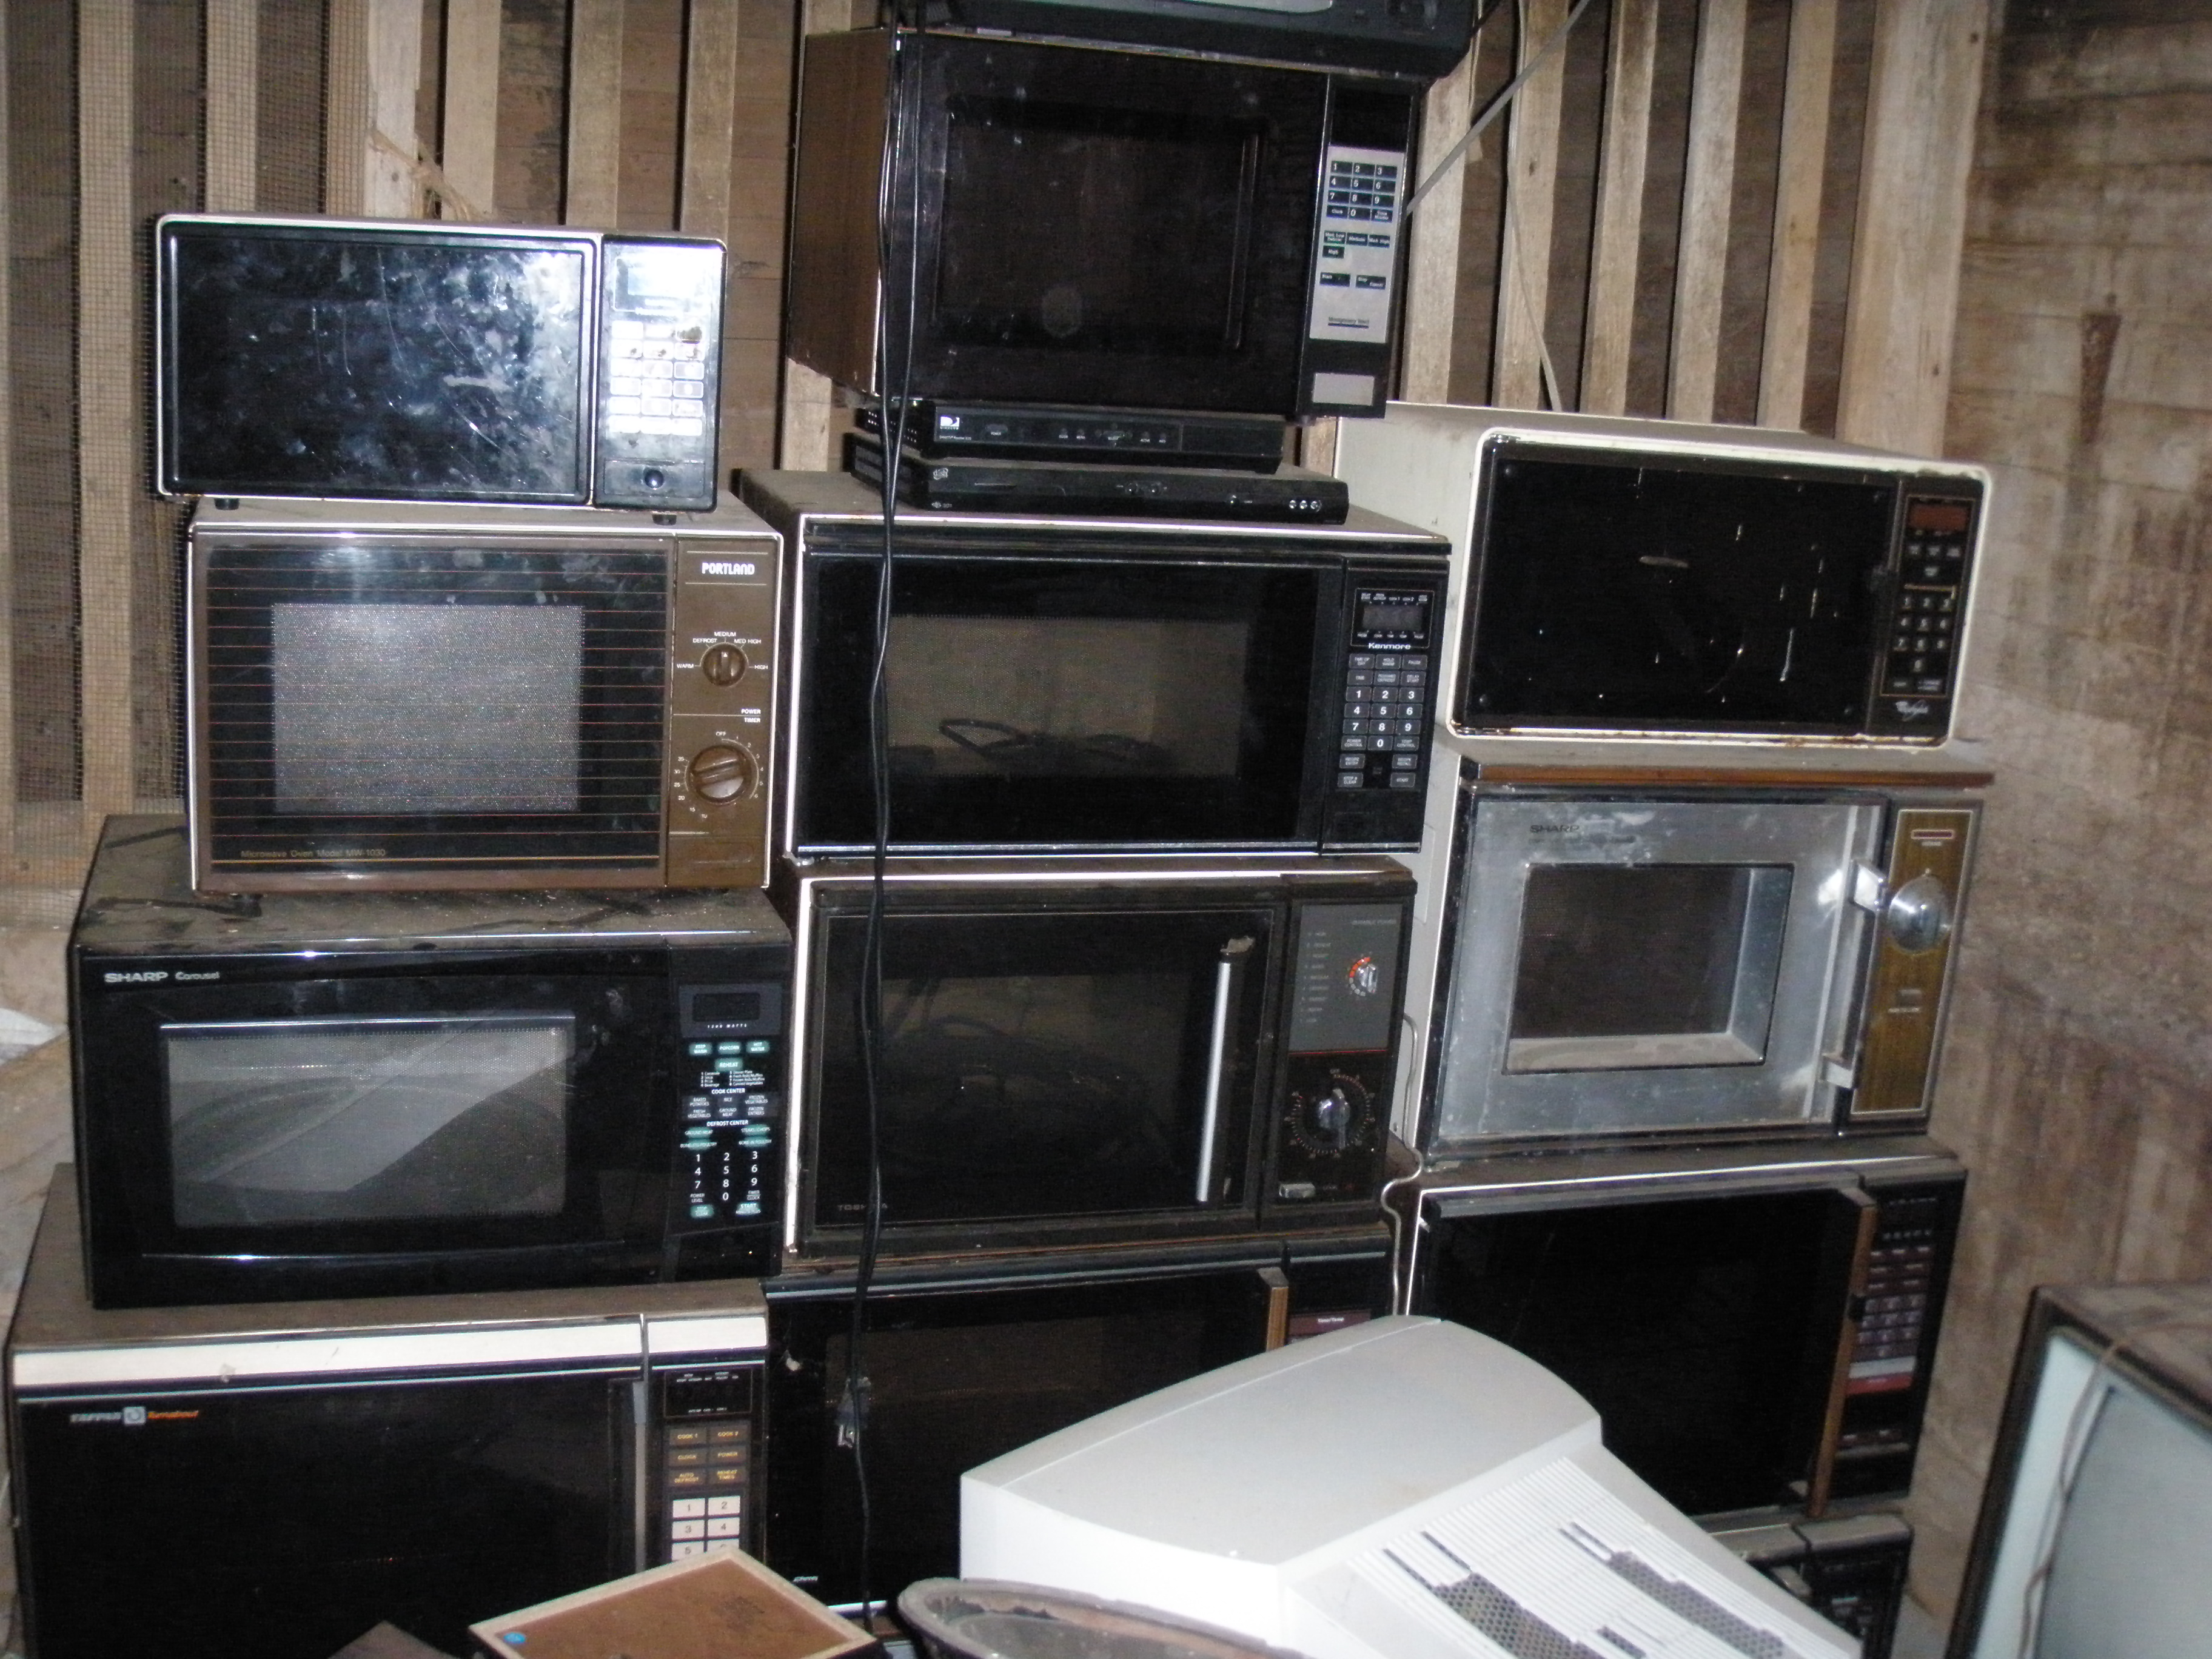 Sharp Carousel Microwave Parts File:Wall of microwaves.JPG - Wikimedia Commons